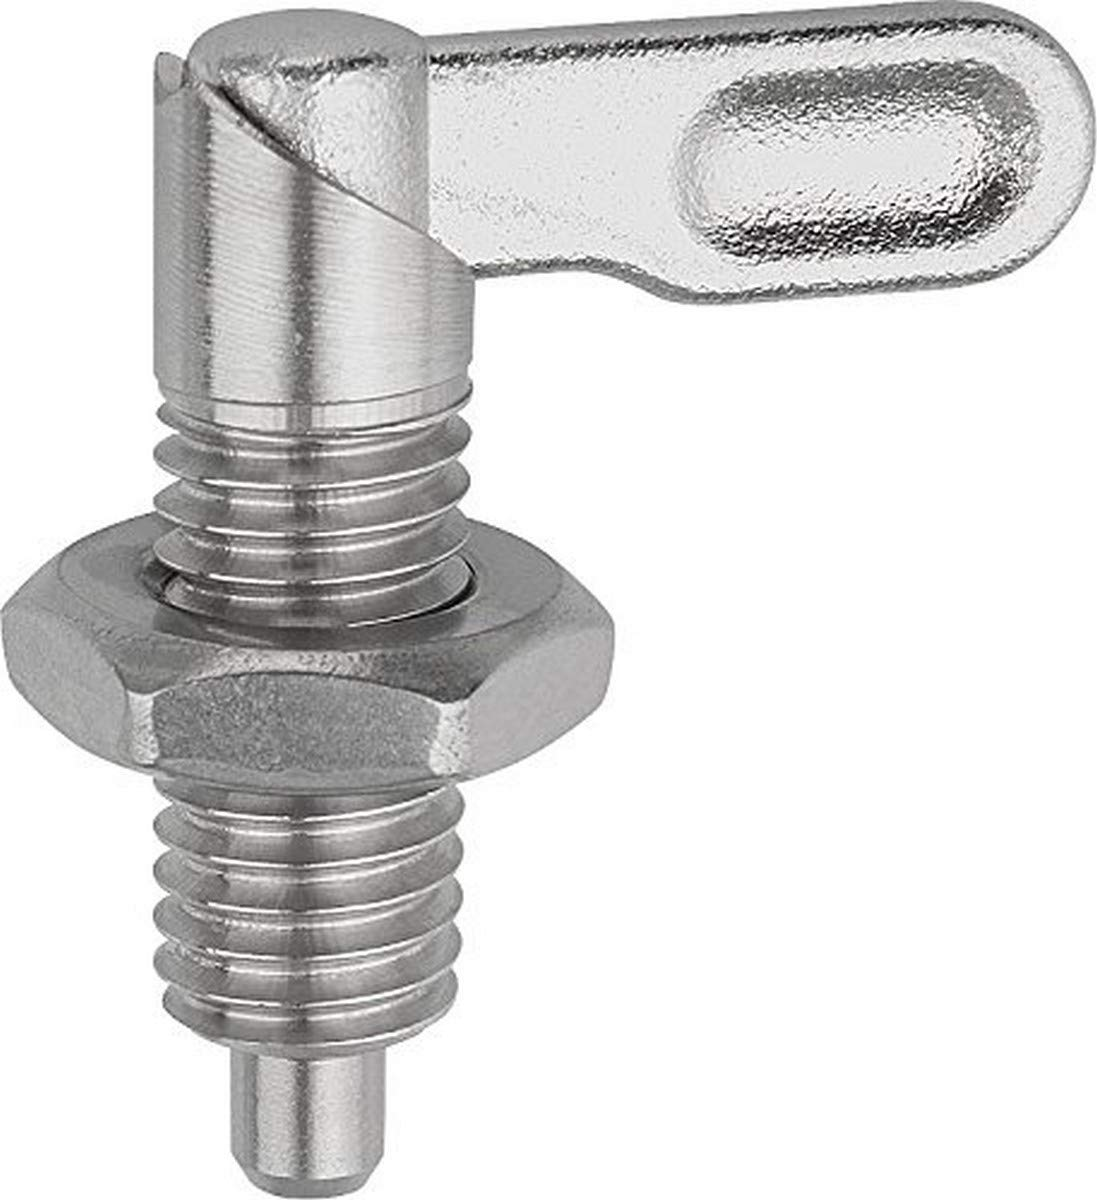 KIPP 03099-10506A6 STAINLESS STEEL CAM ACTION INDEXING PLUNGER STYLE B INCH NATURAL FINISH 6 MM LOCKING PIN DIAMETER 5   8-11 THREAD